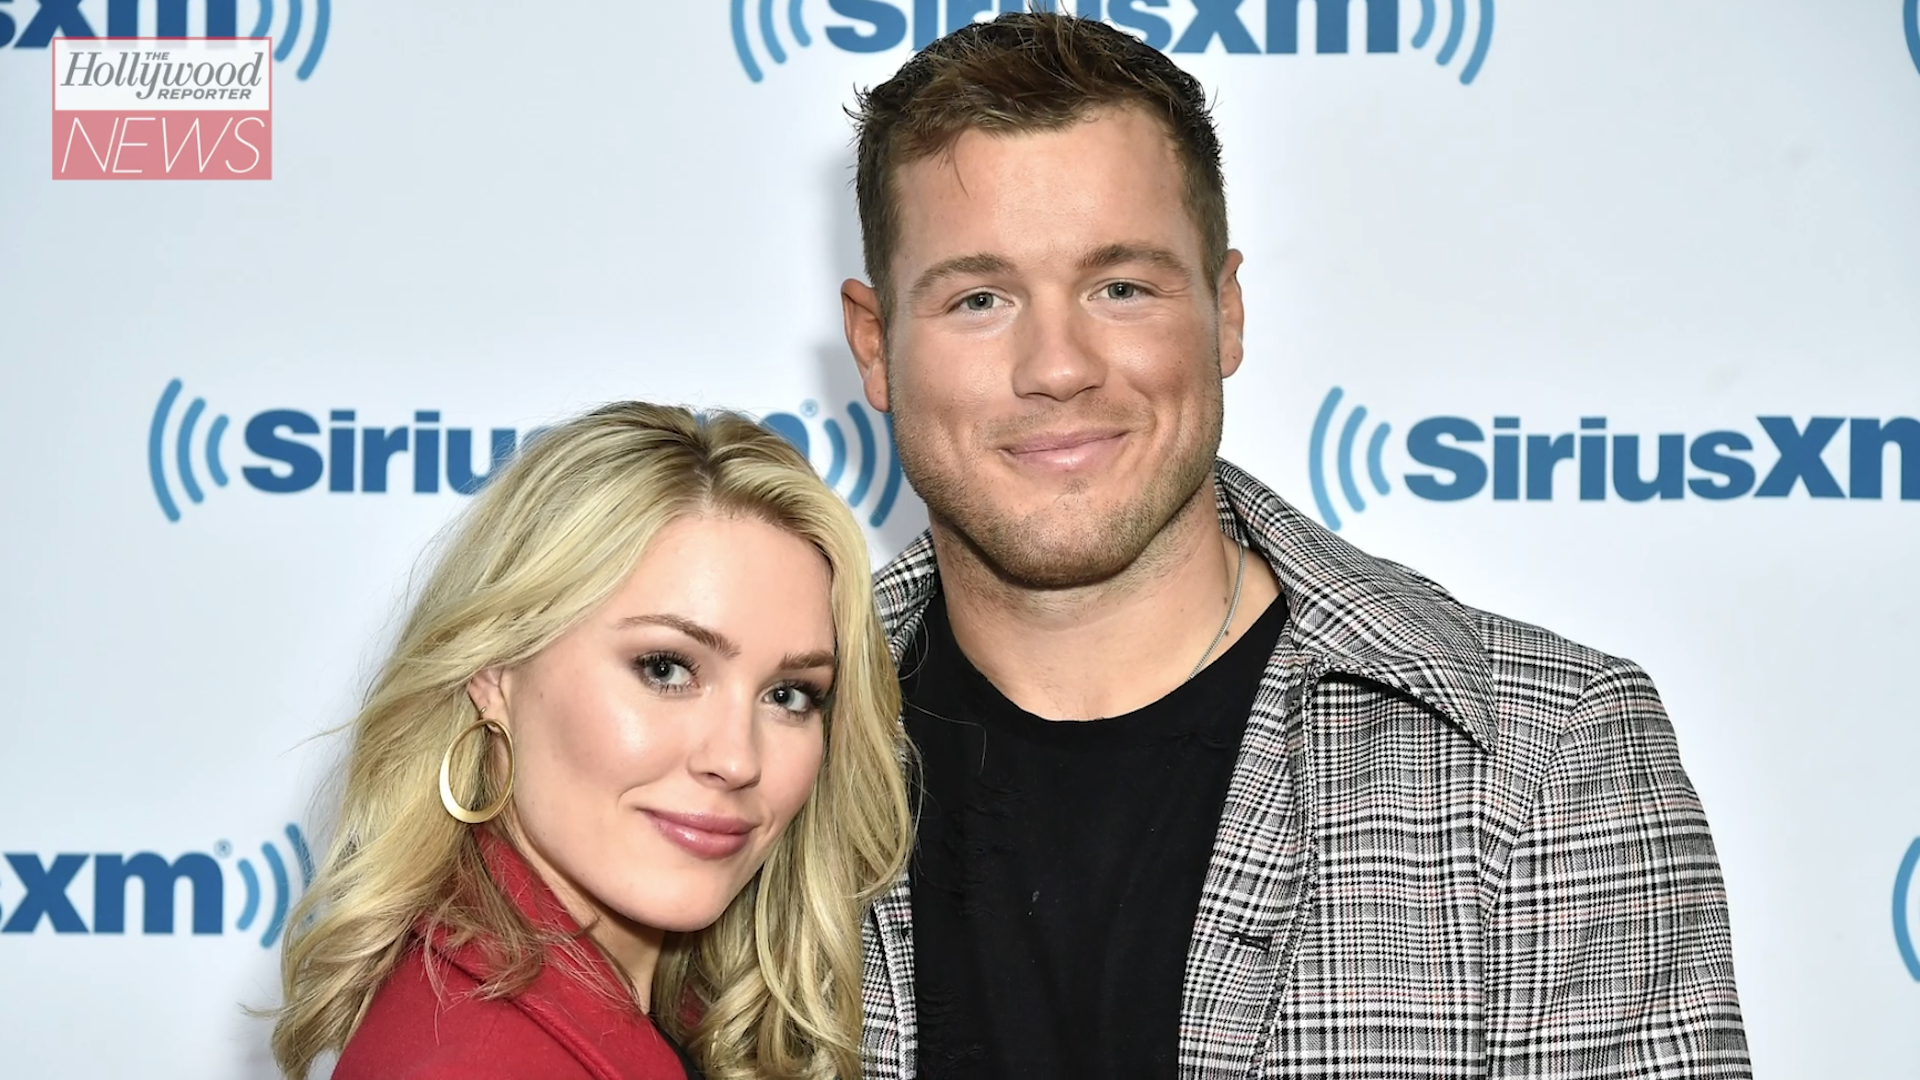 'Bachelor' Colton Underwood Addresses Ex Cassie Randolph: 'I Made Mistakes' | THR News